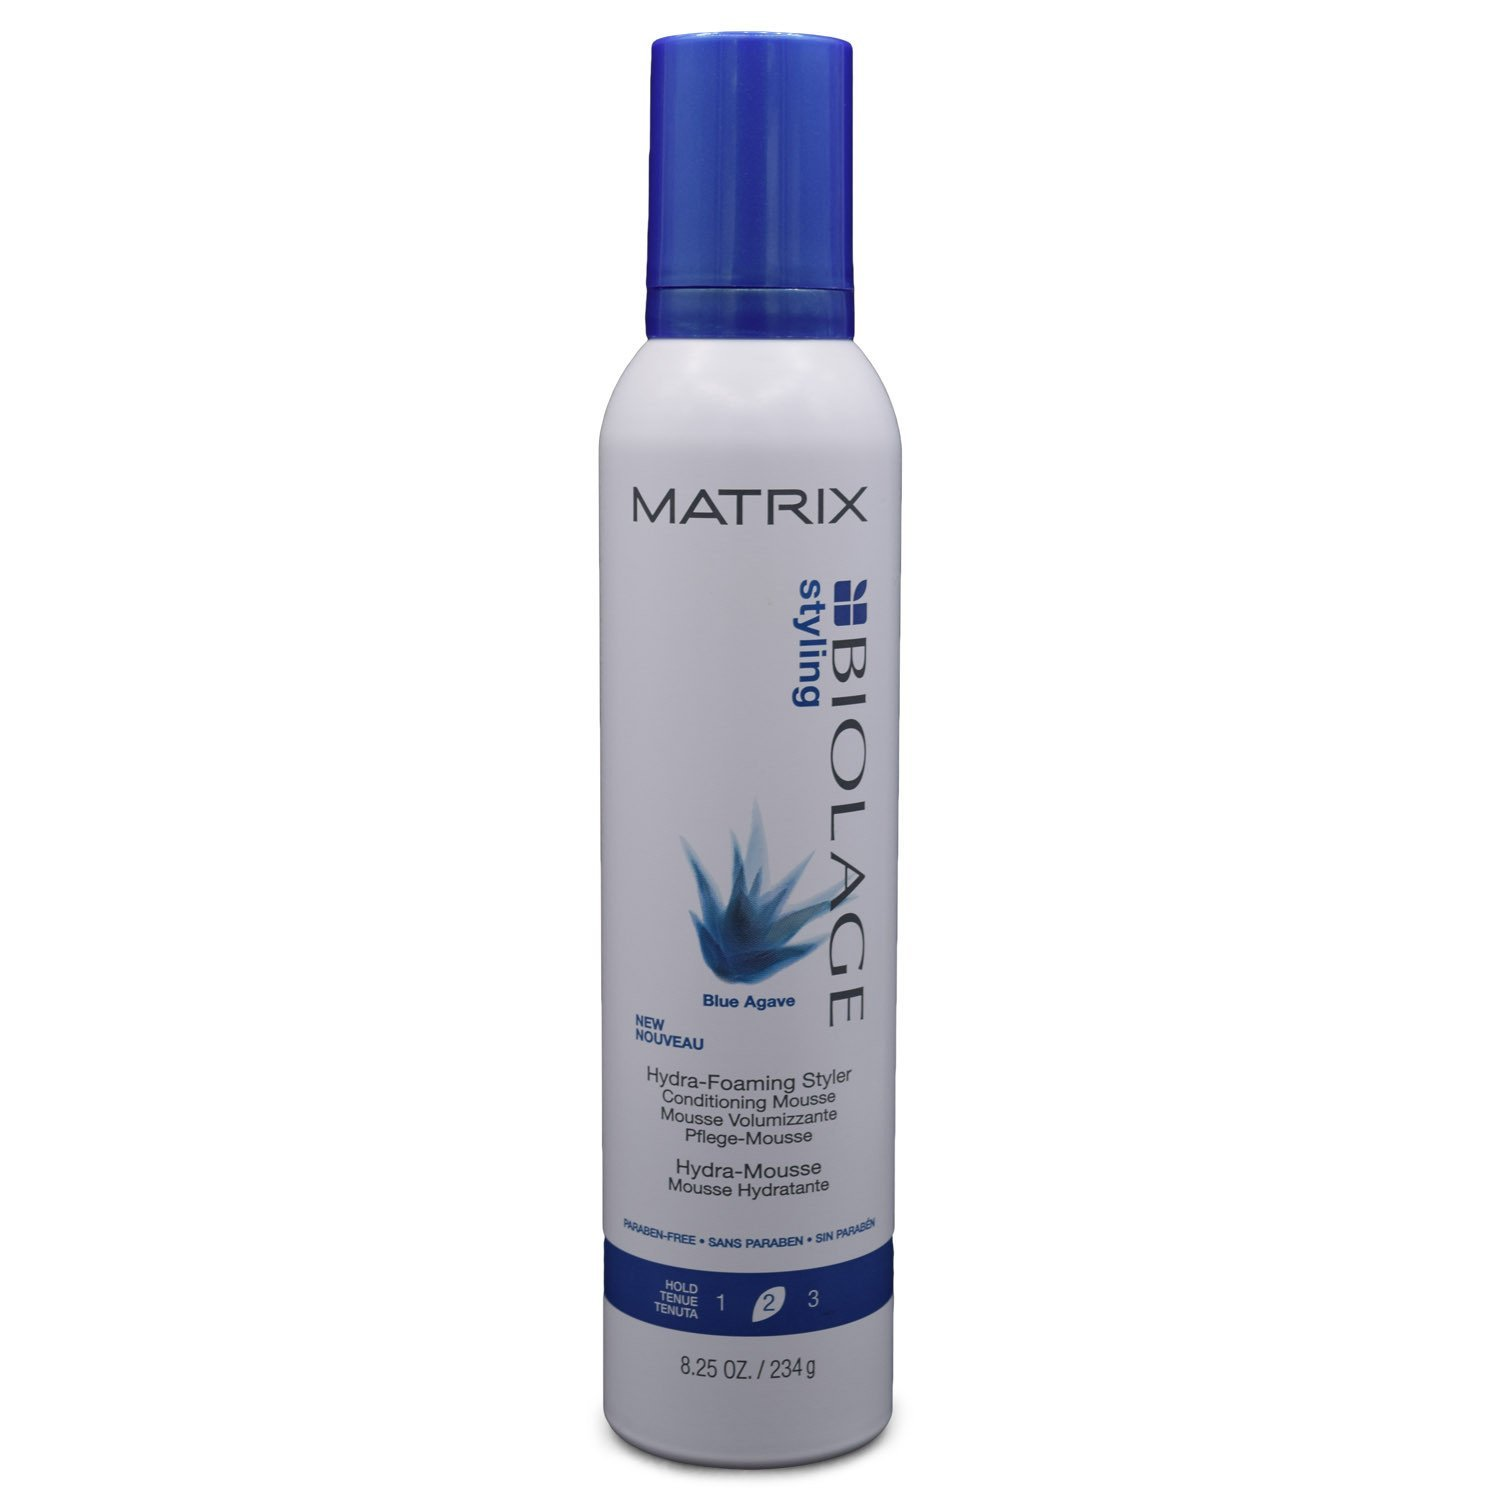 Matrix Biolage Styling Hydra Foaming Styler Conditioning Mousse 8.25 oz